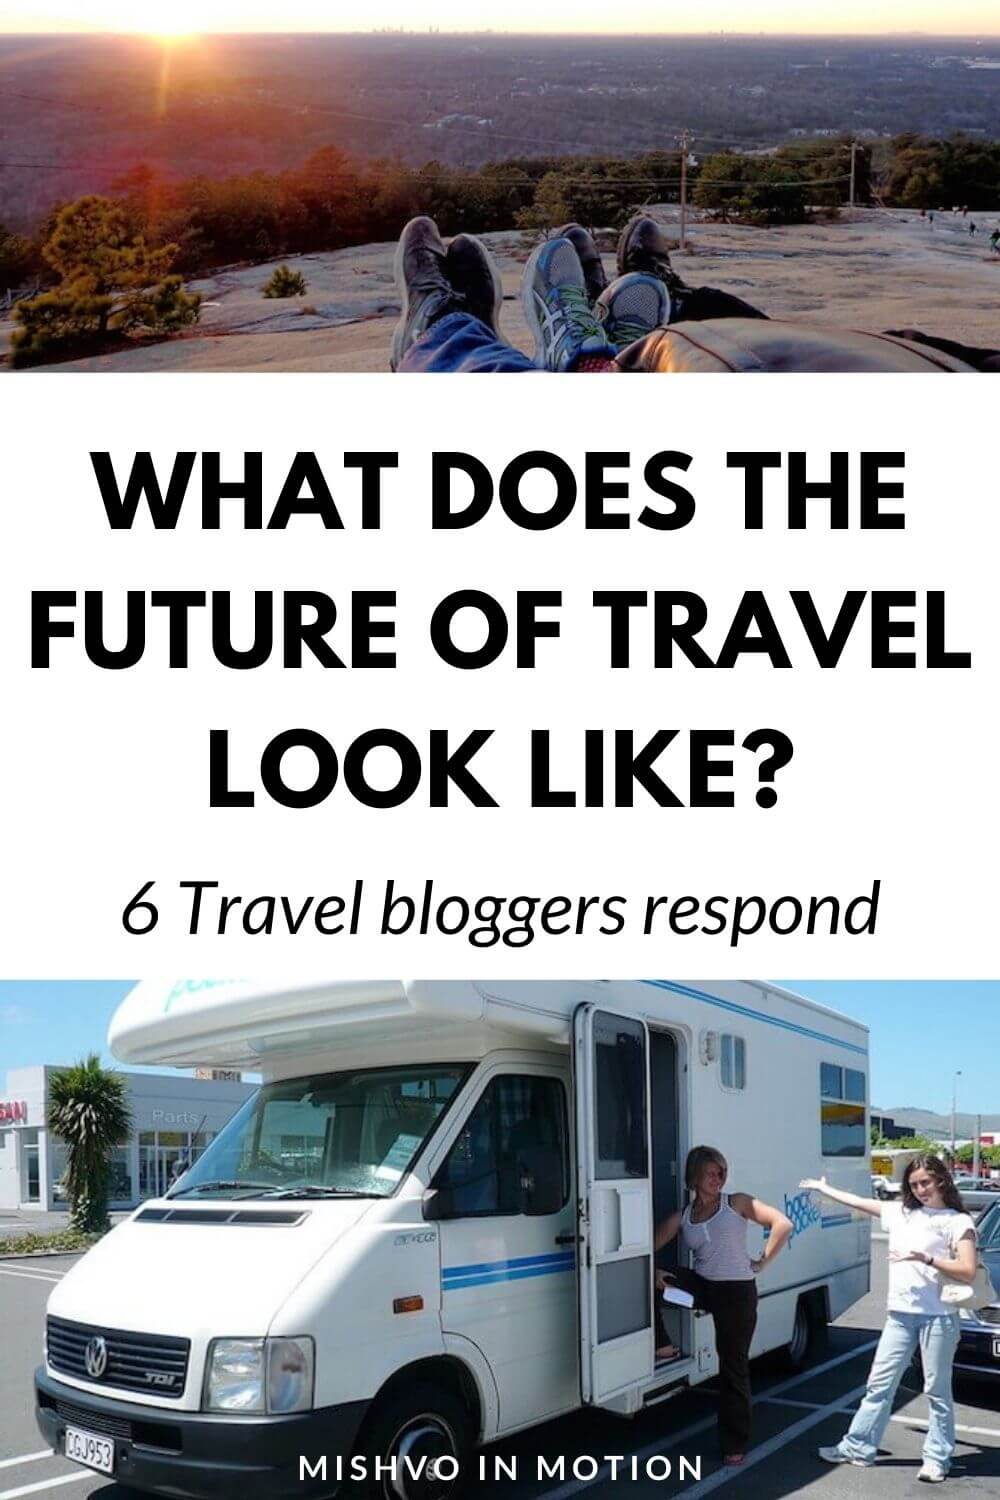 6 Top Travel Bloggers On The Future Of Travel